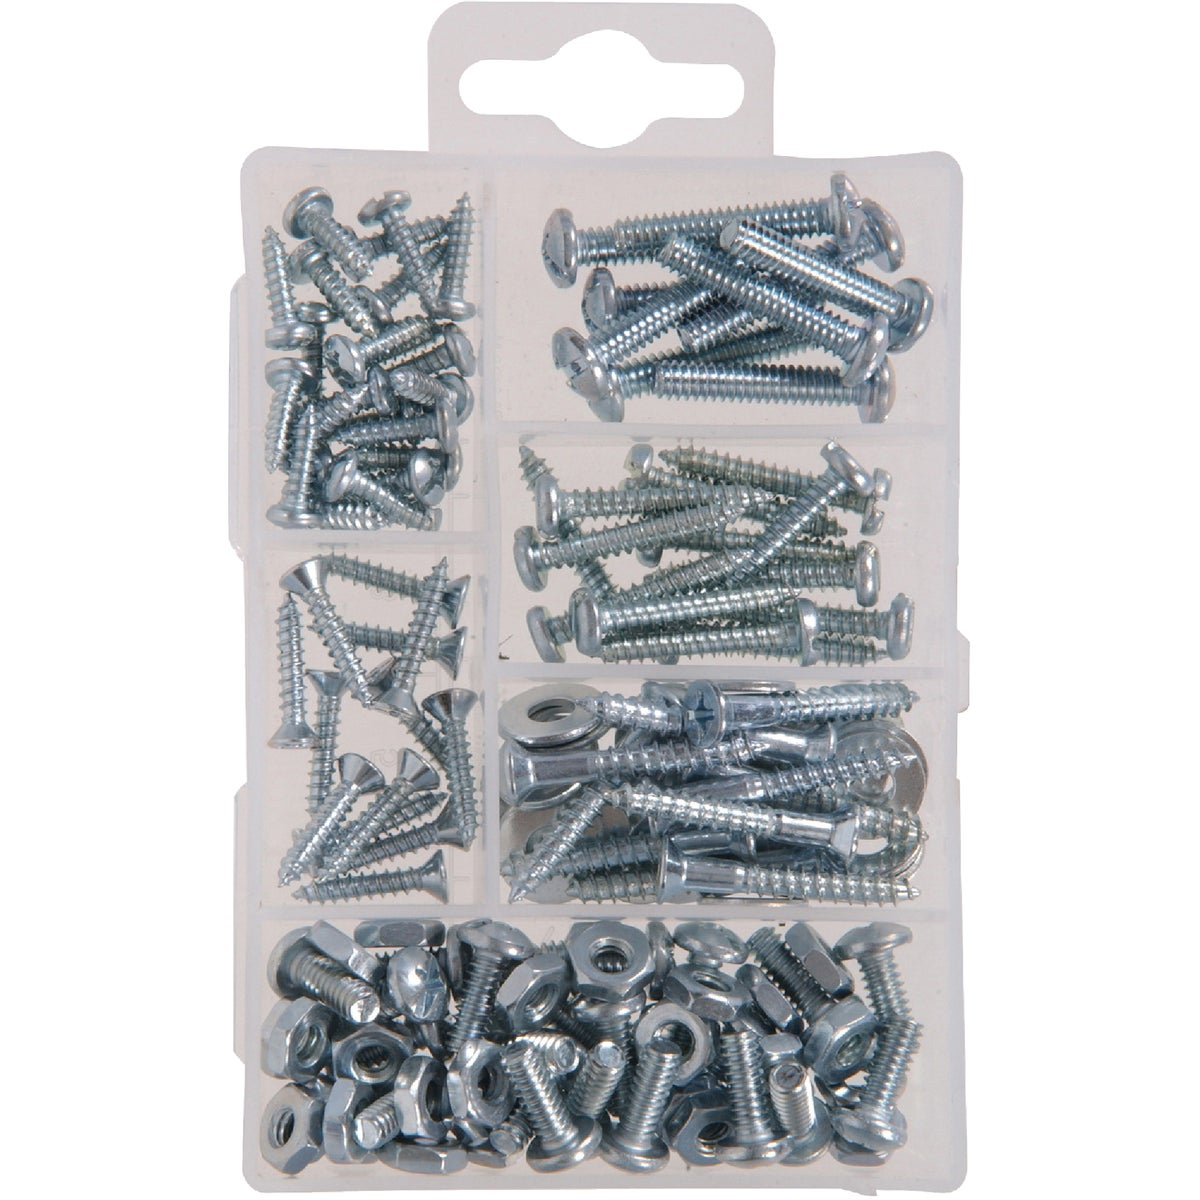 KIT HOME - 130203 by Hillman Fastener